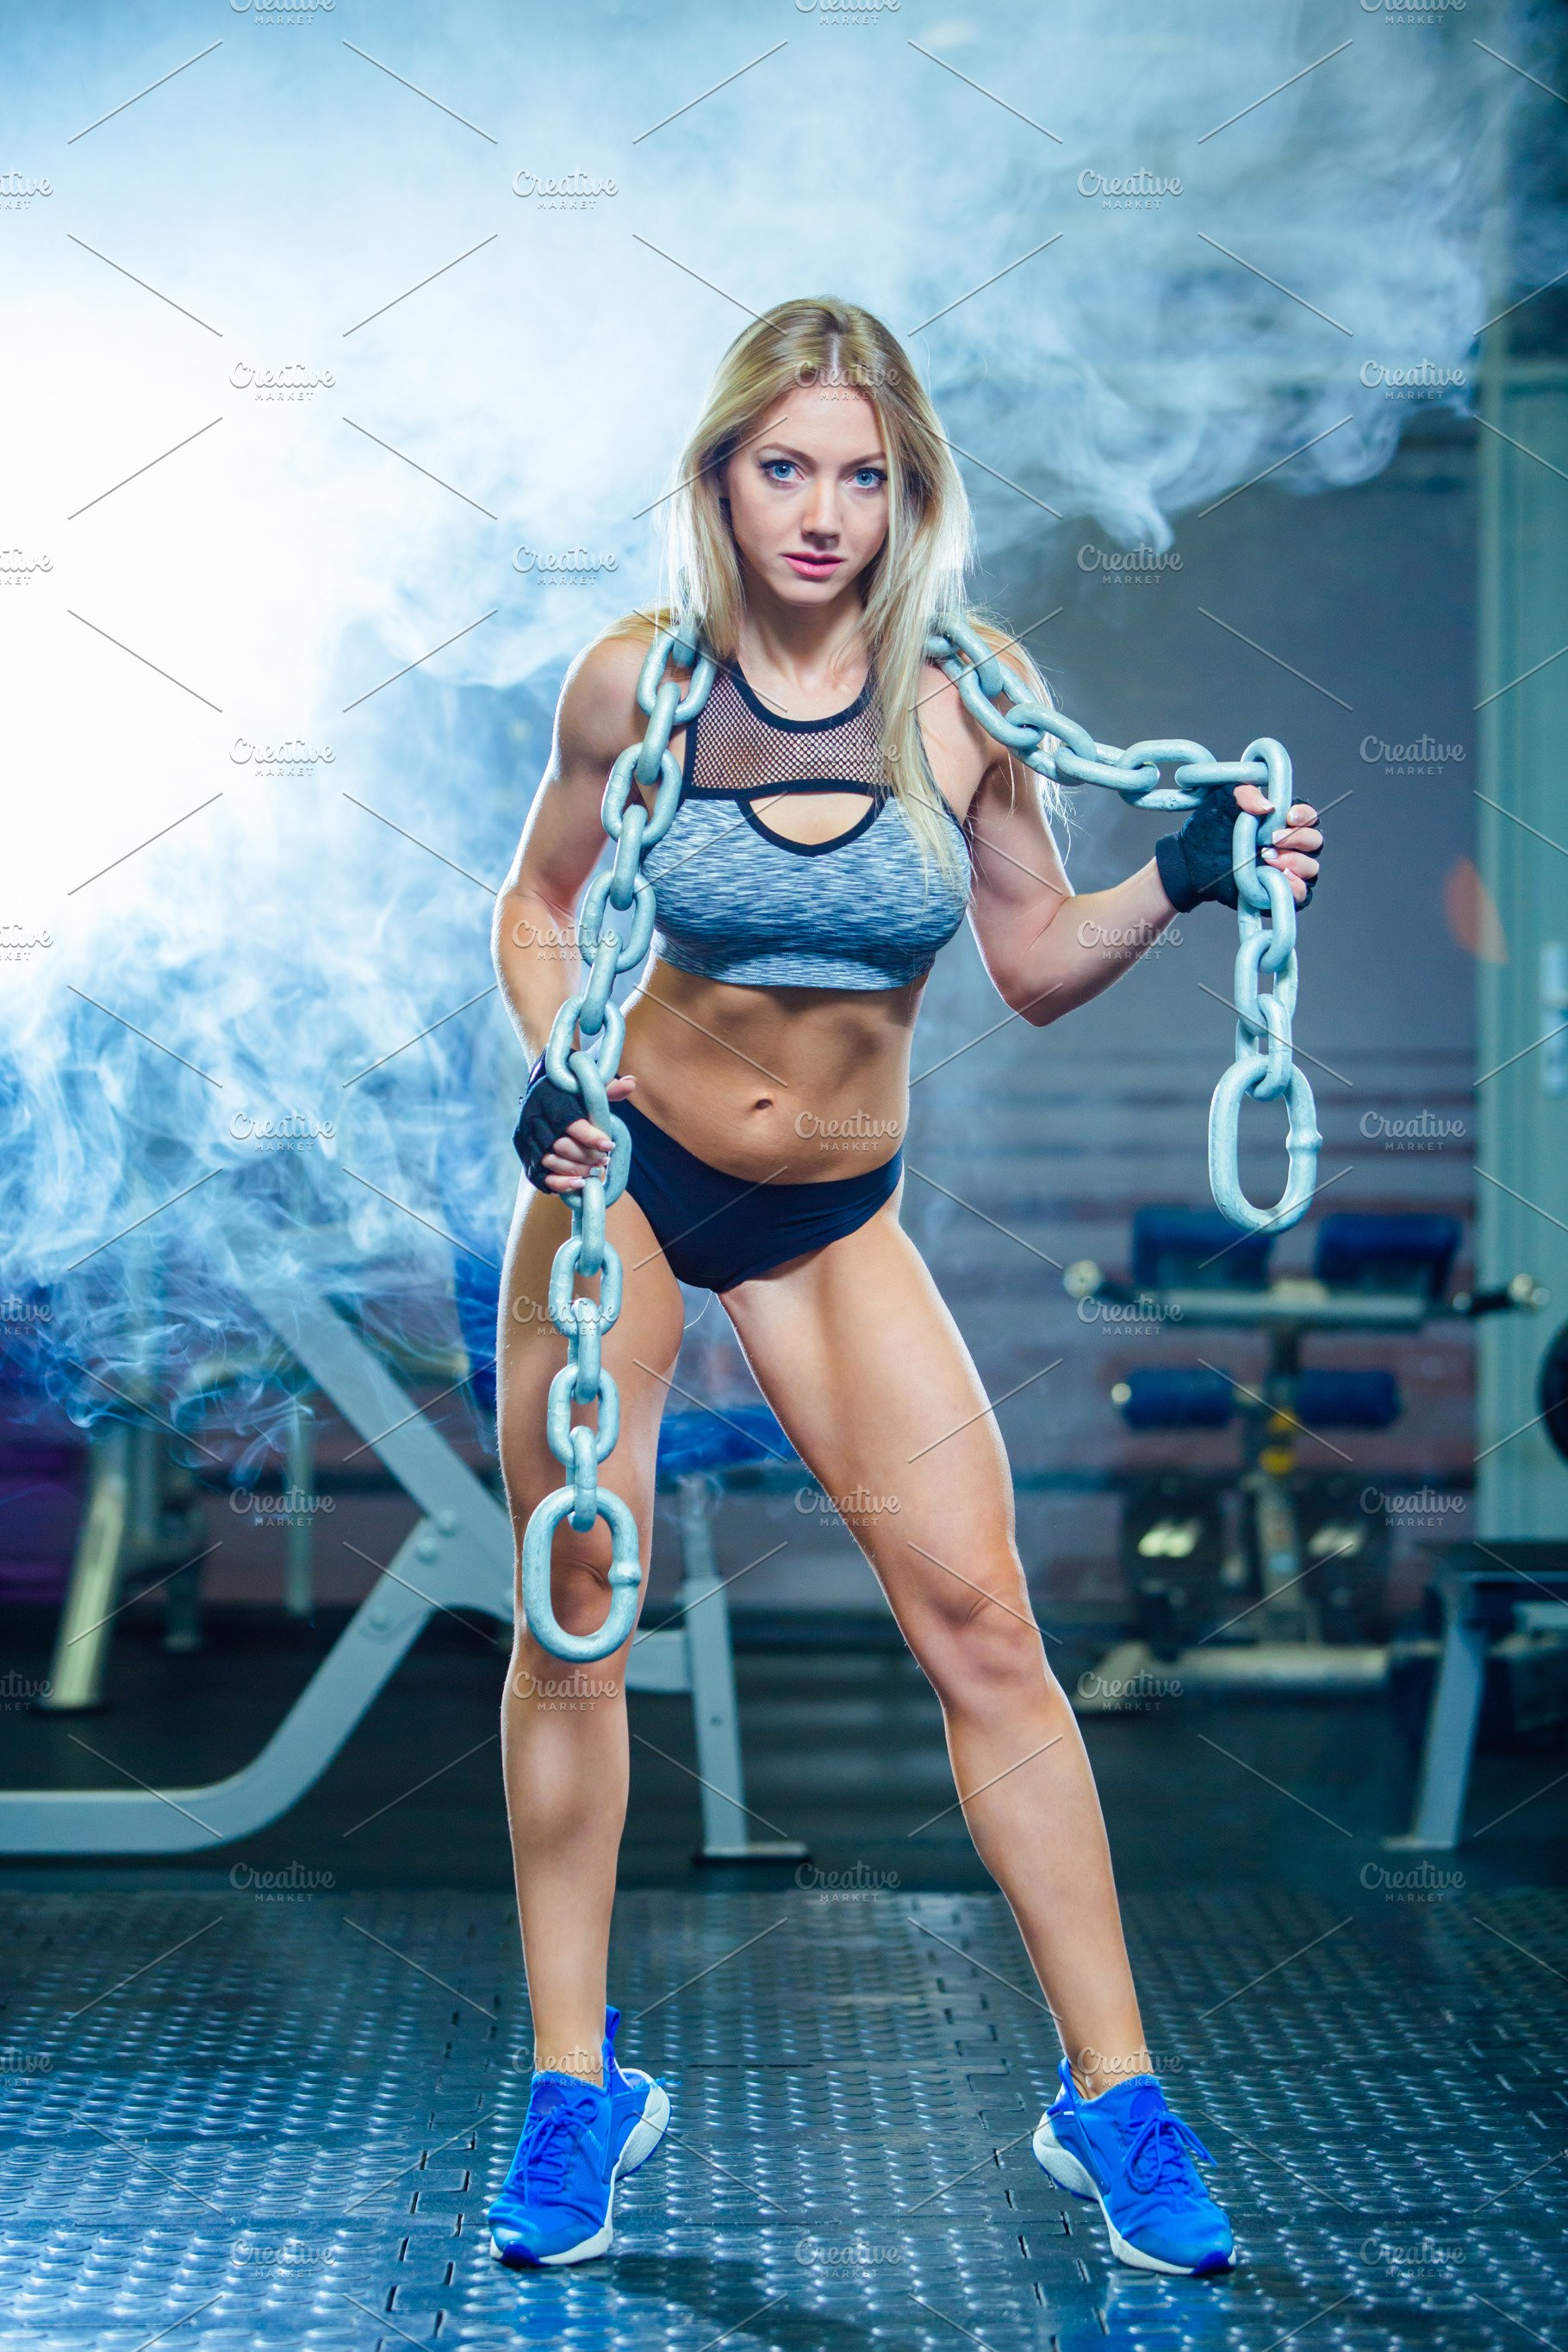 Young sexy woman doing exercises with heavy chain in gym  Classic  bodybuilding  Muscular blonde fitness woman doing exercises in the gym   Fitness